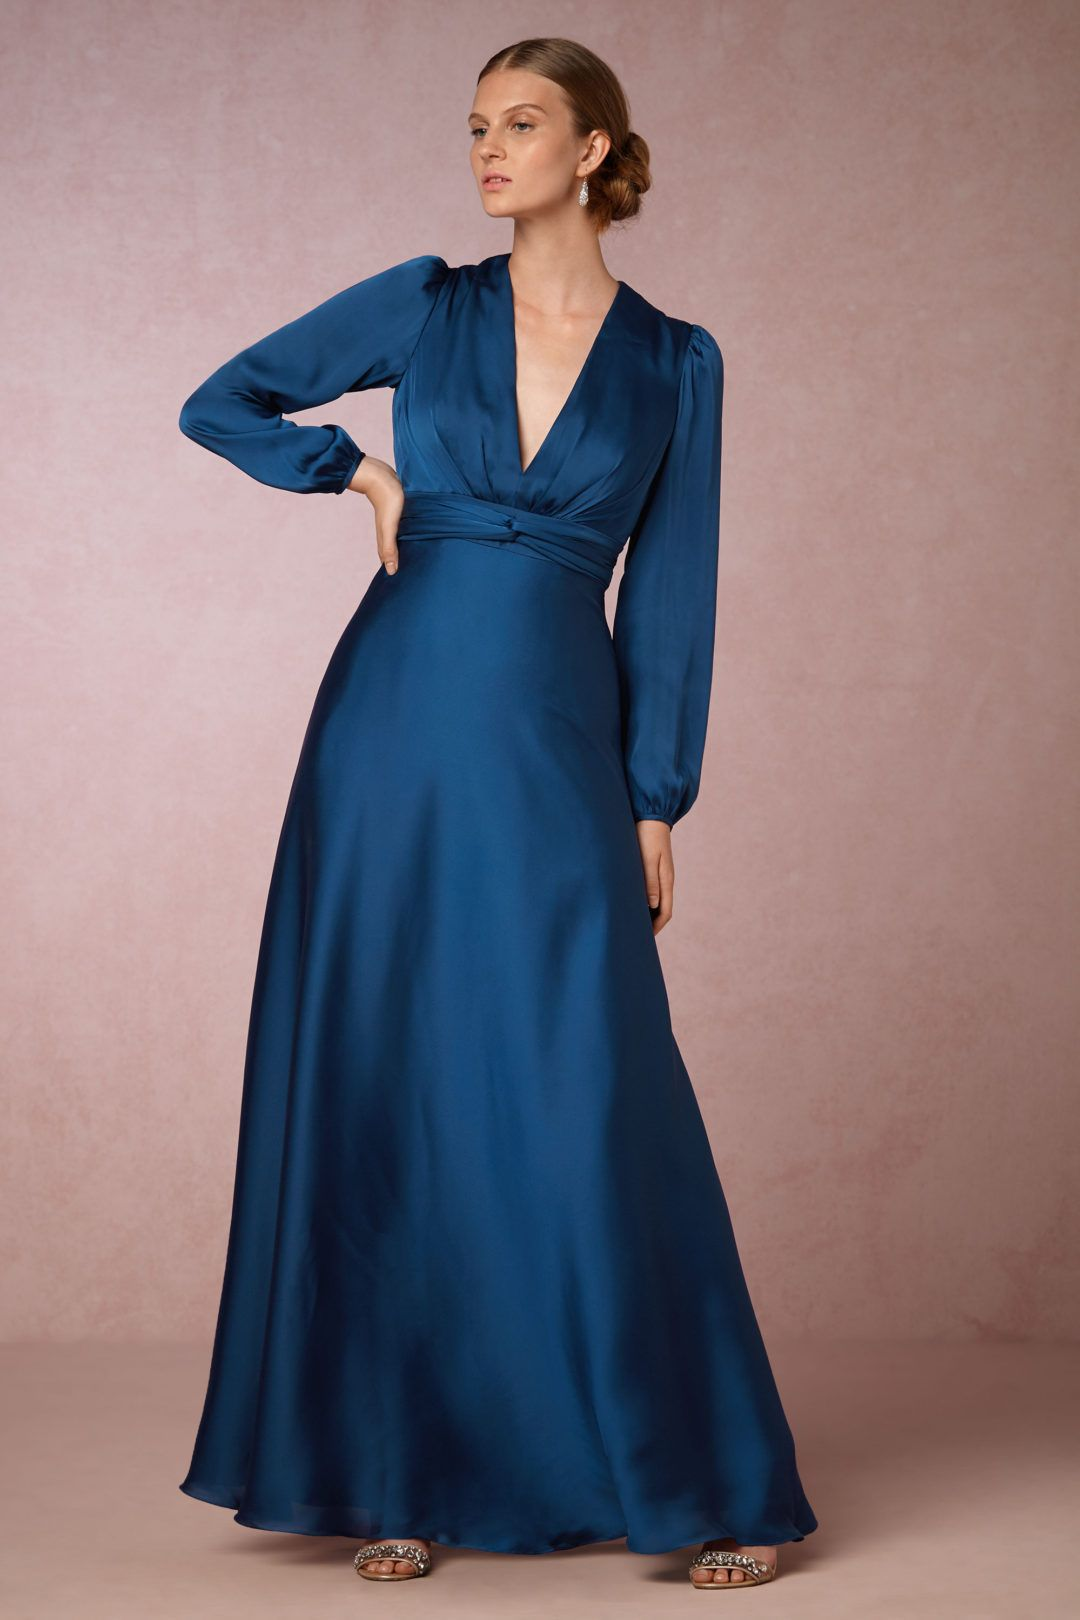 New Party Dresses for Fall and Winter 2016 Autumn